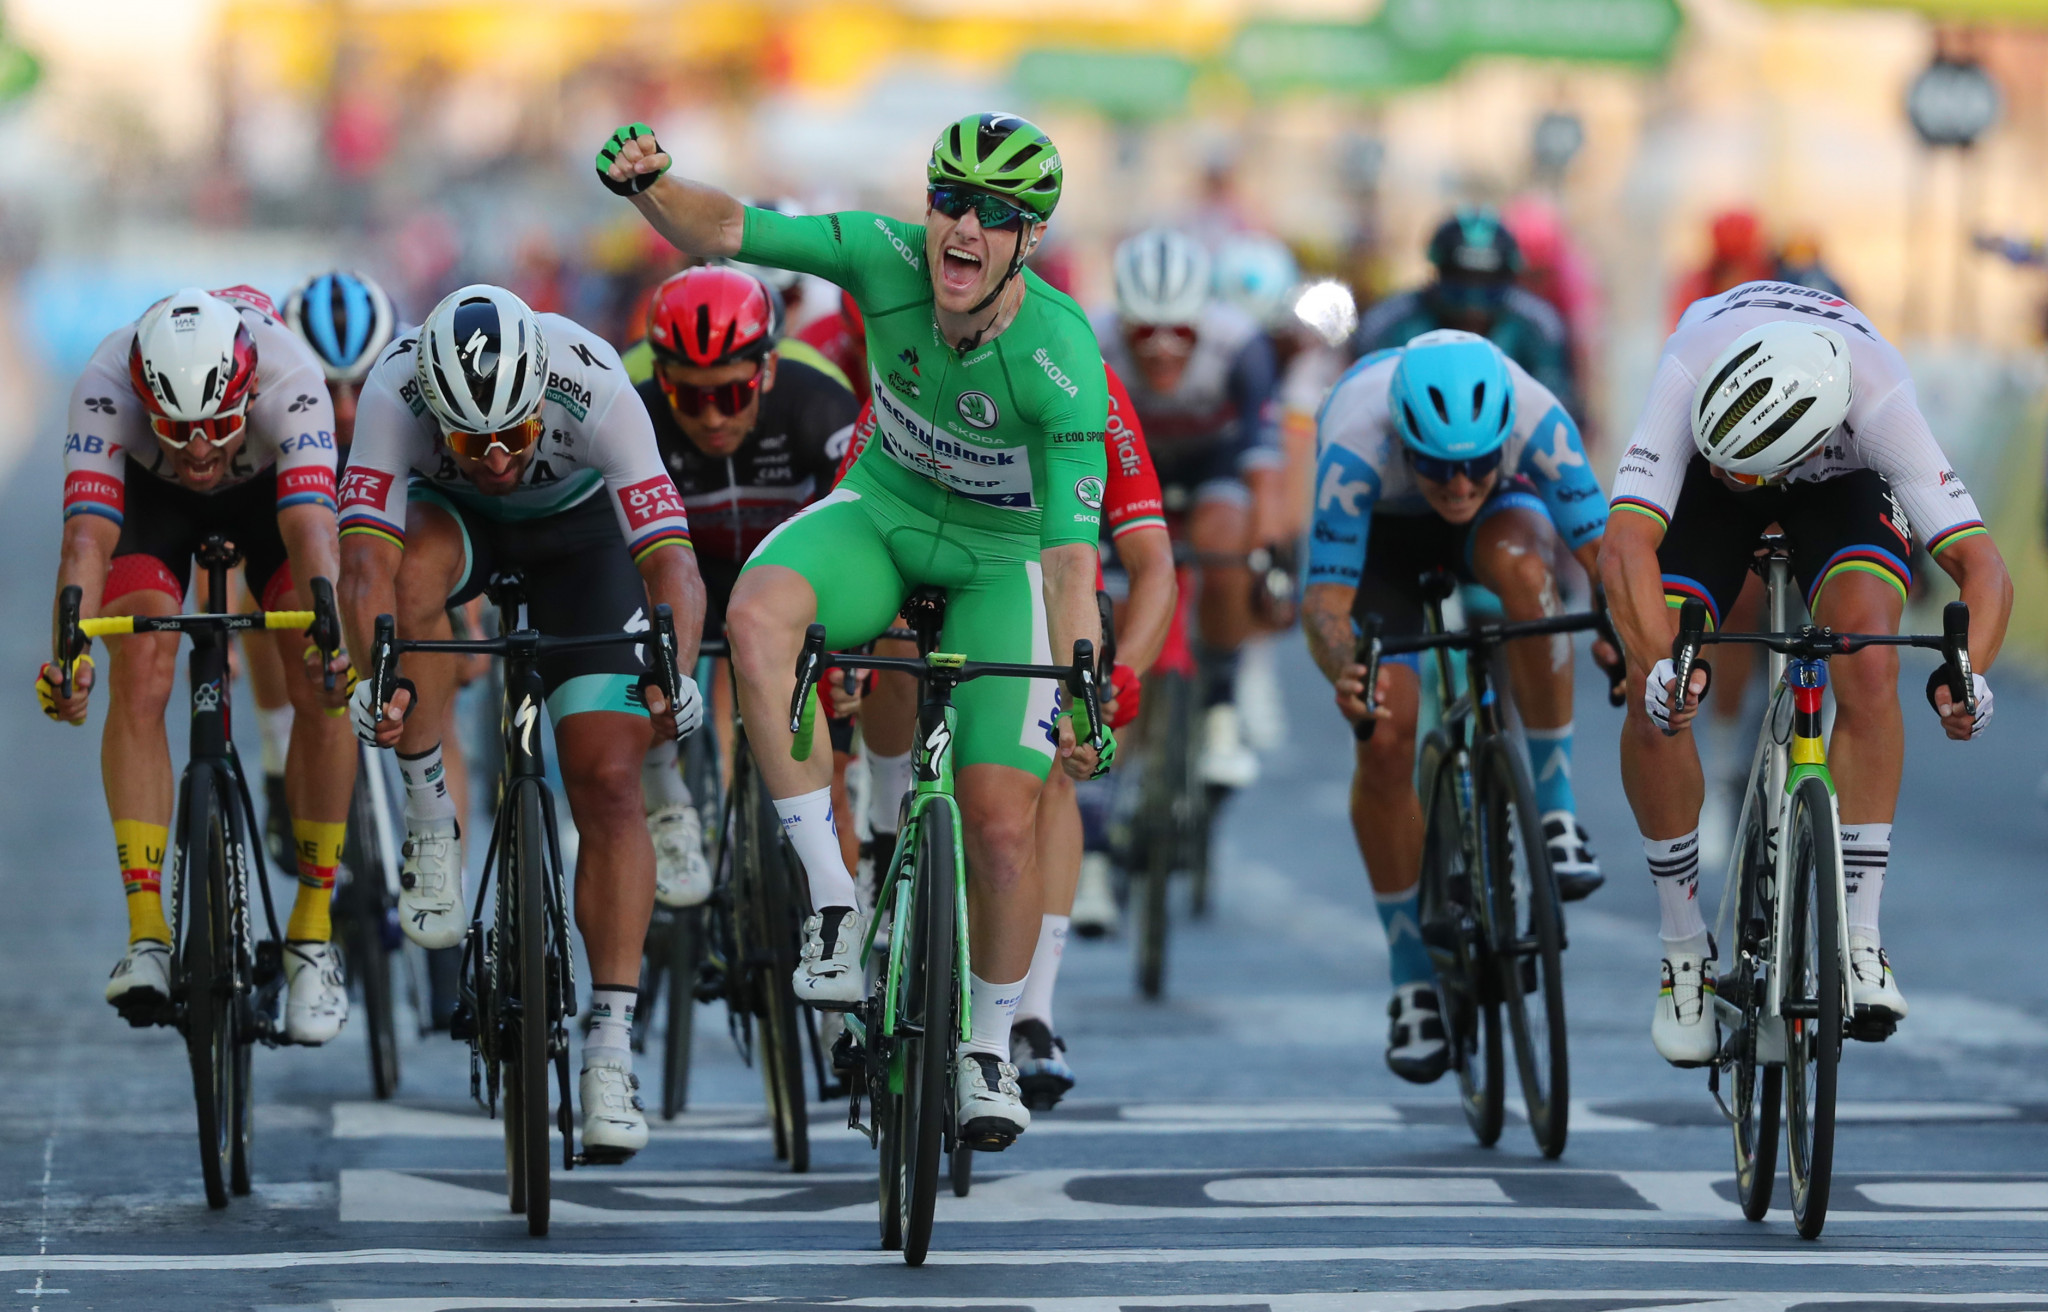 Green jersey Sam Bennett triumphed on the final stage ©Getty Images